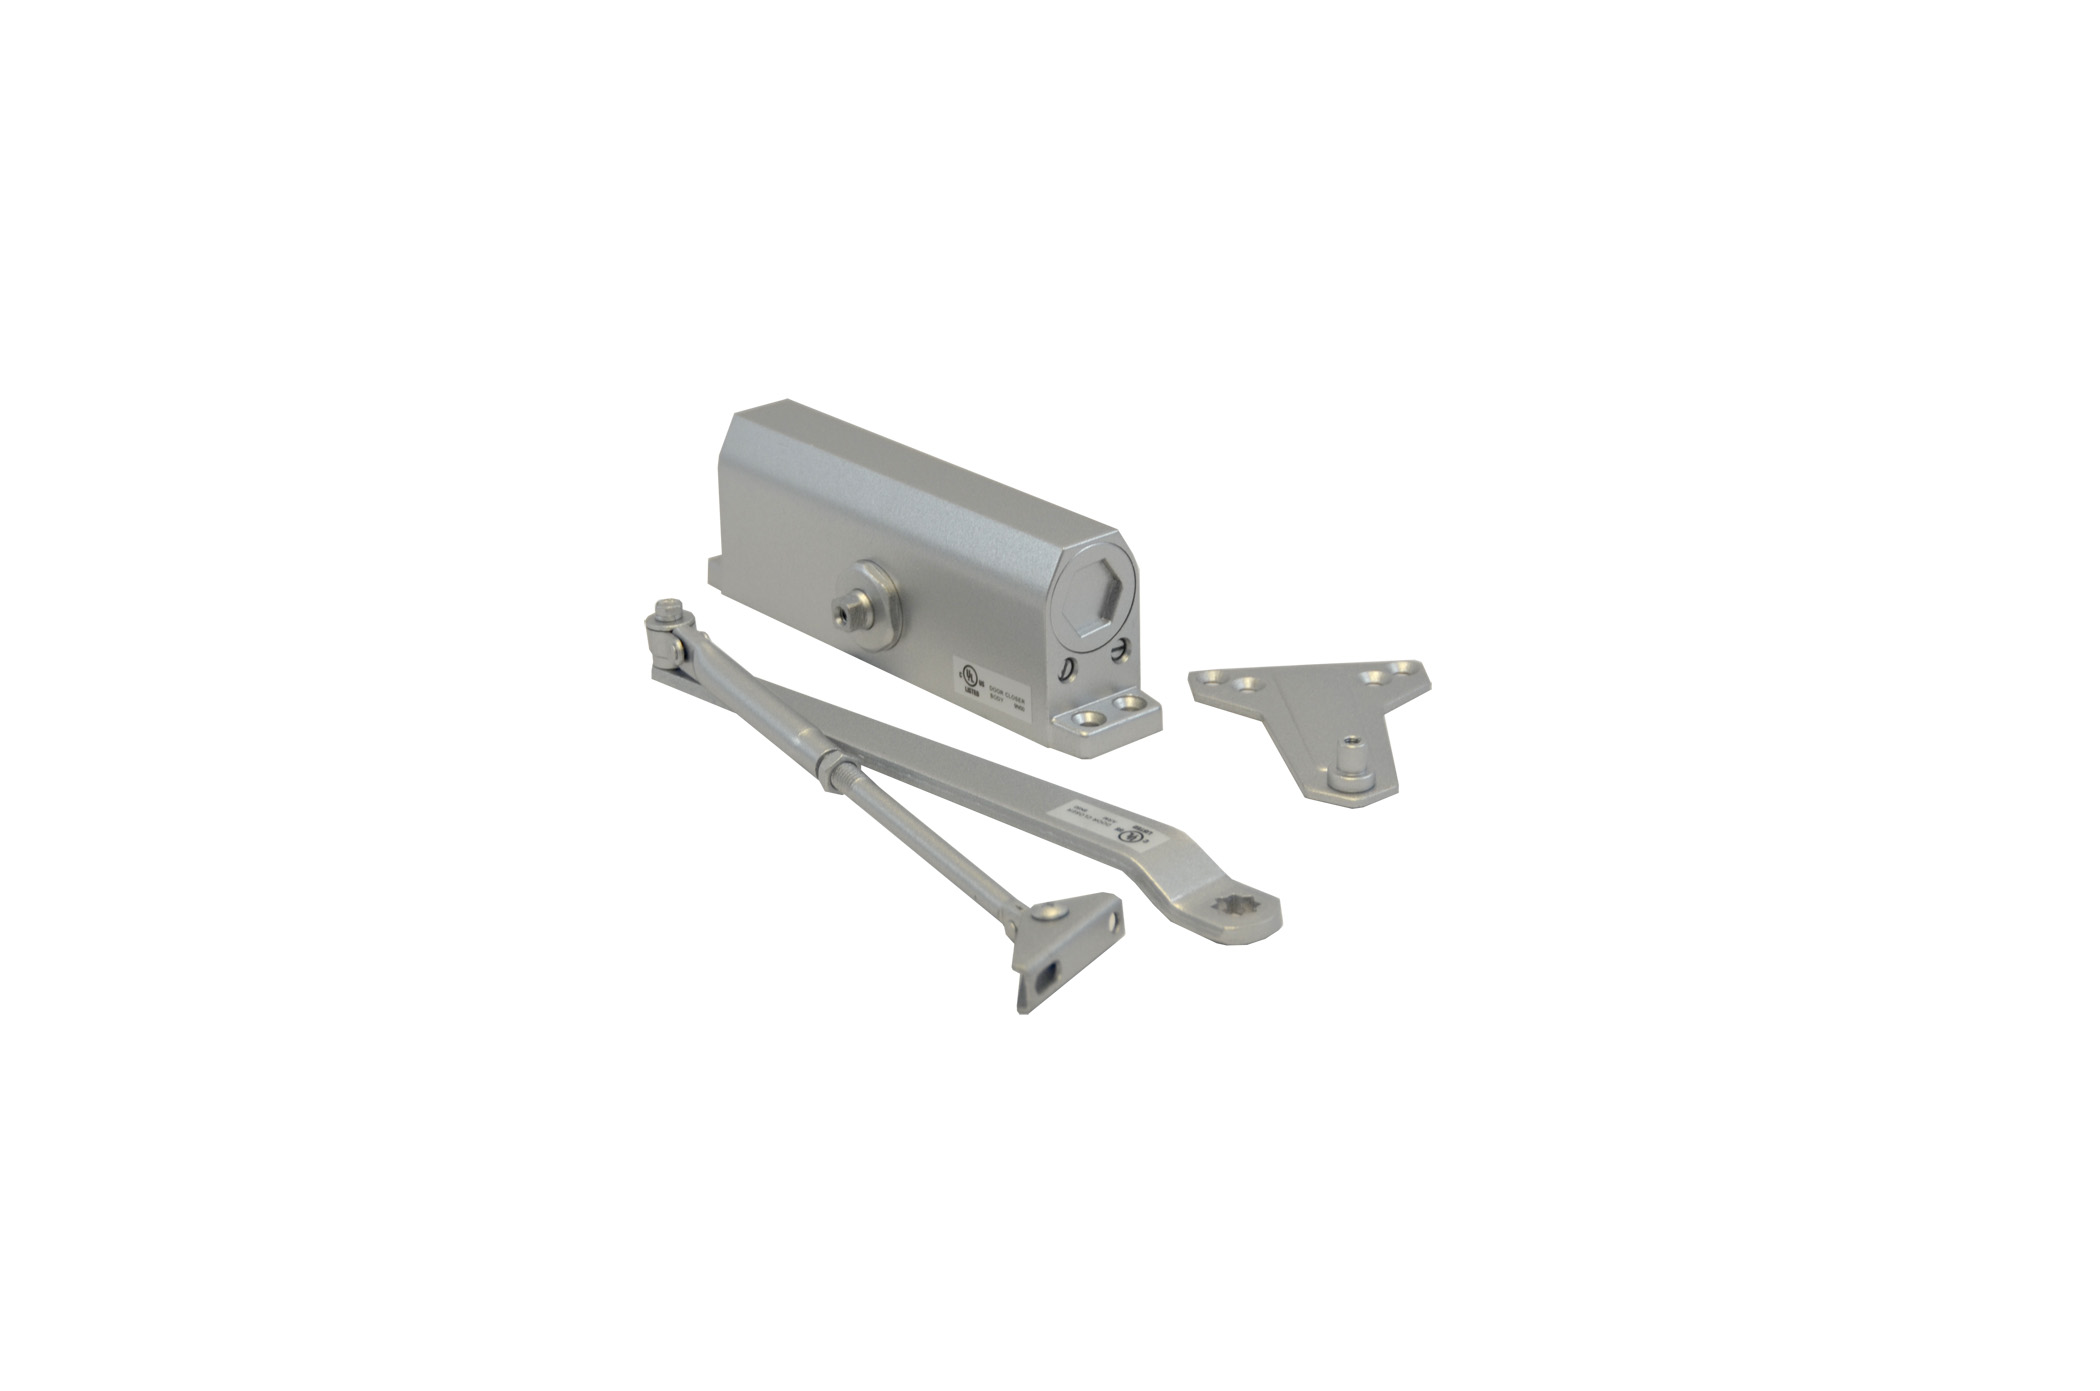 653al Dorex Door Closer The Hardware Pro